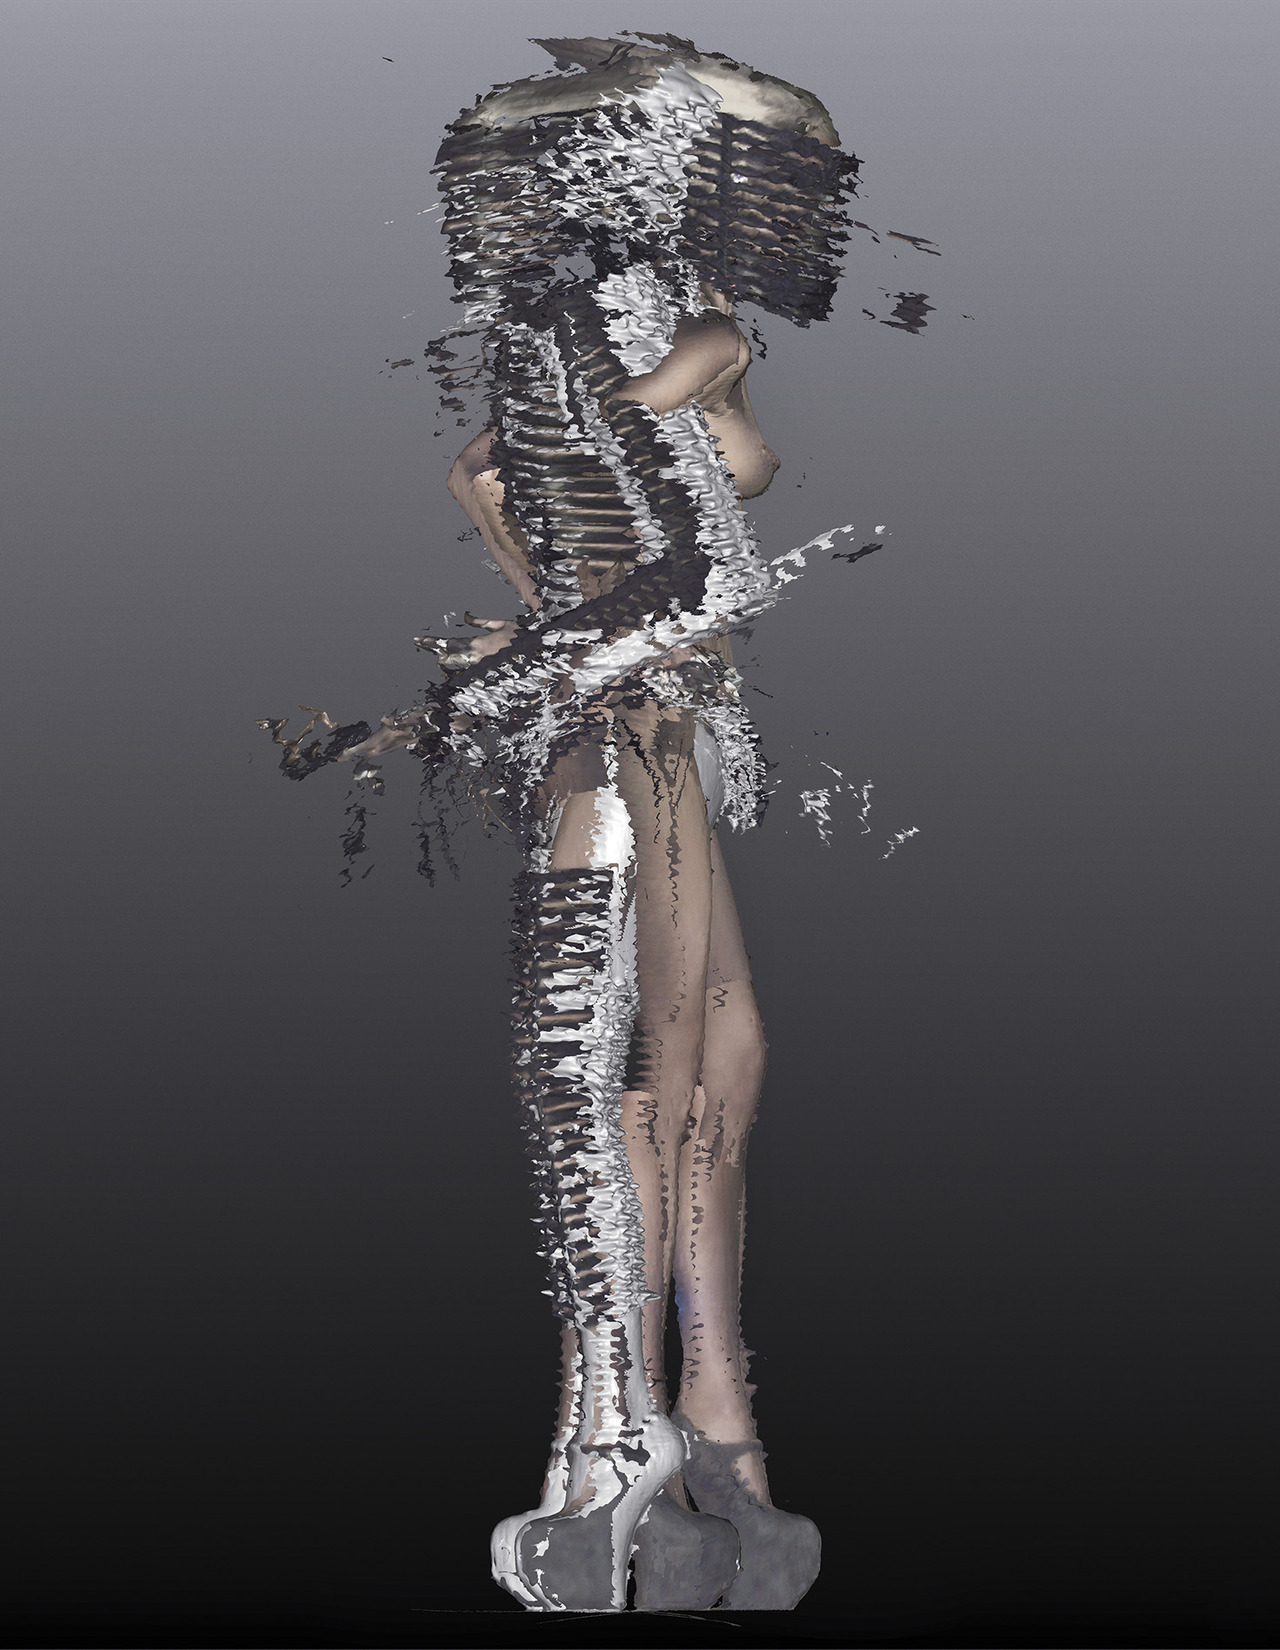 Daphne Guinness + Nick Knight + W Magazine   Frocks = Gareth Pugh